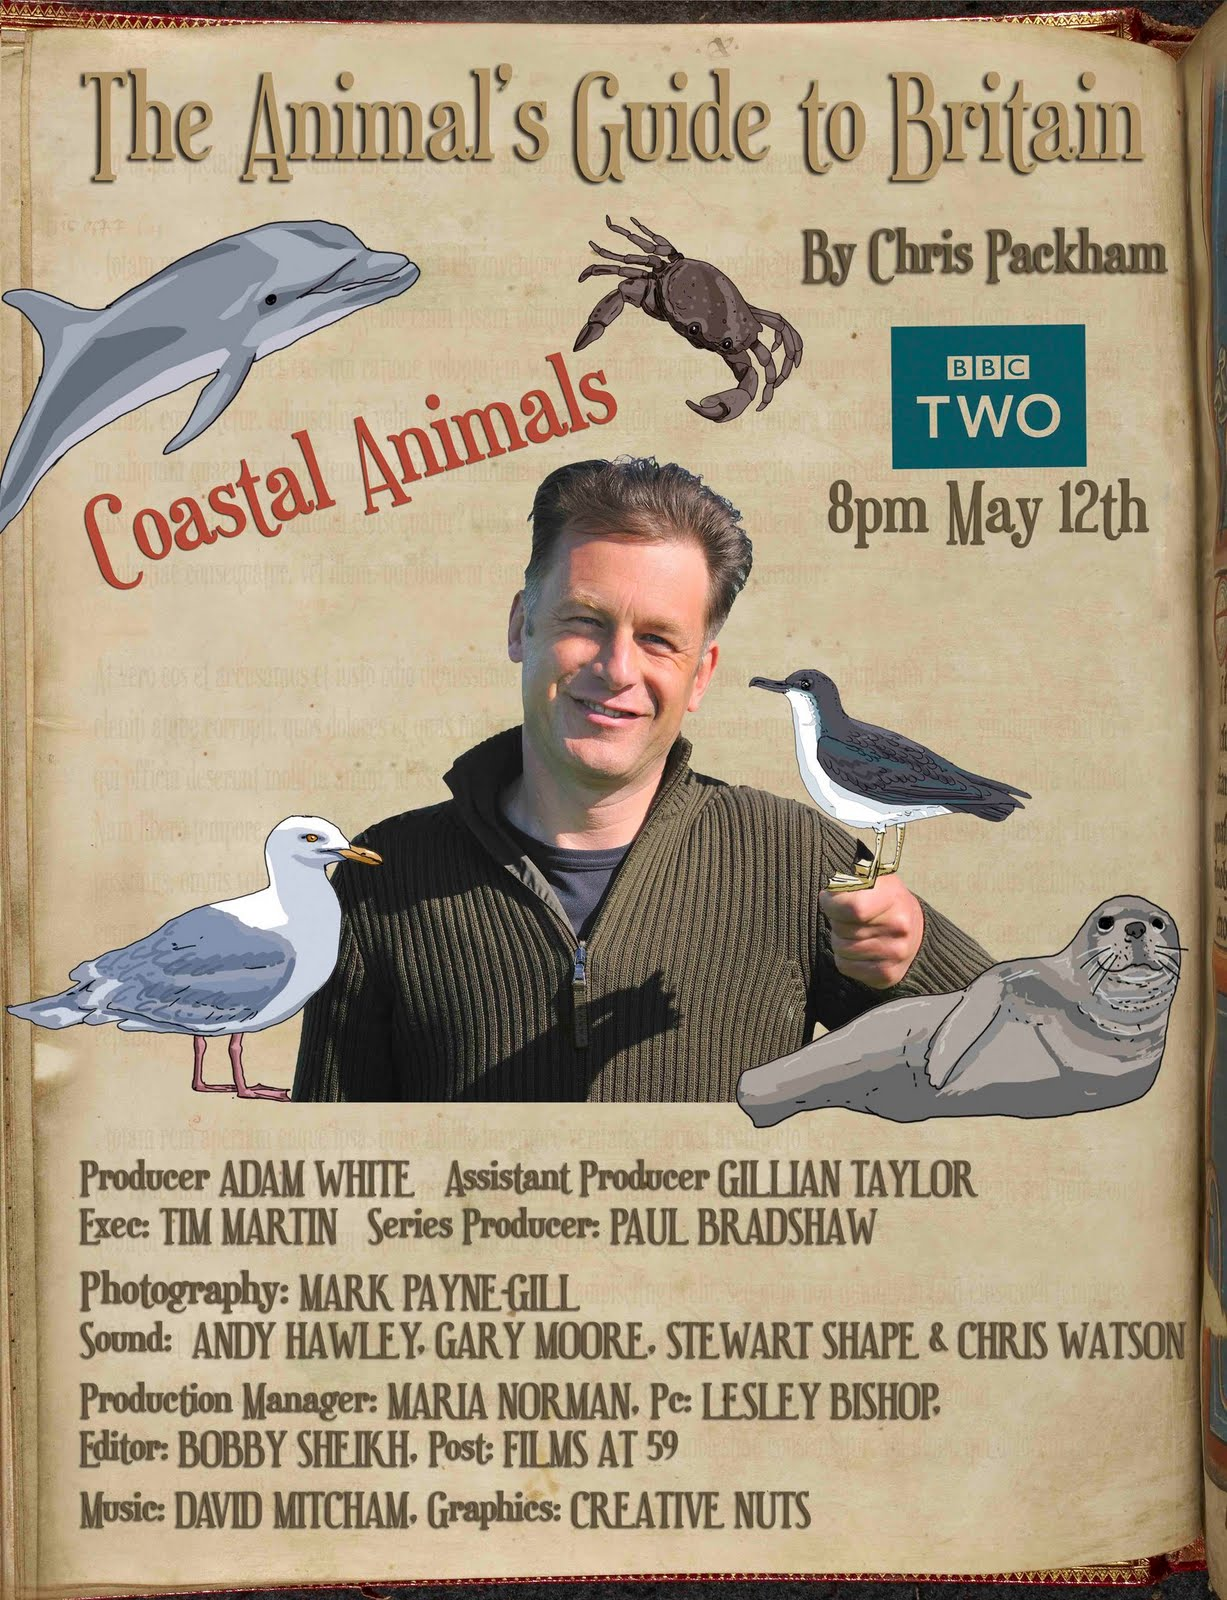 Coastal Animals with Chris Packham